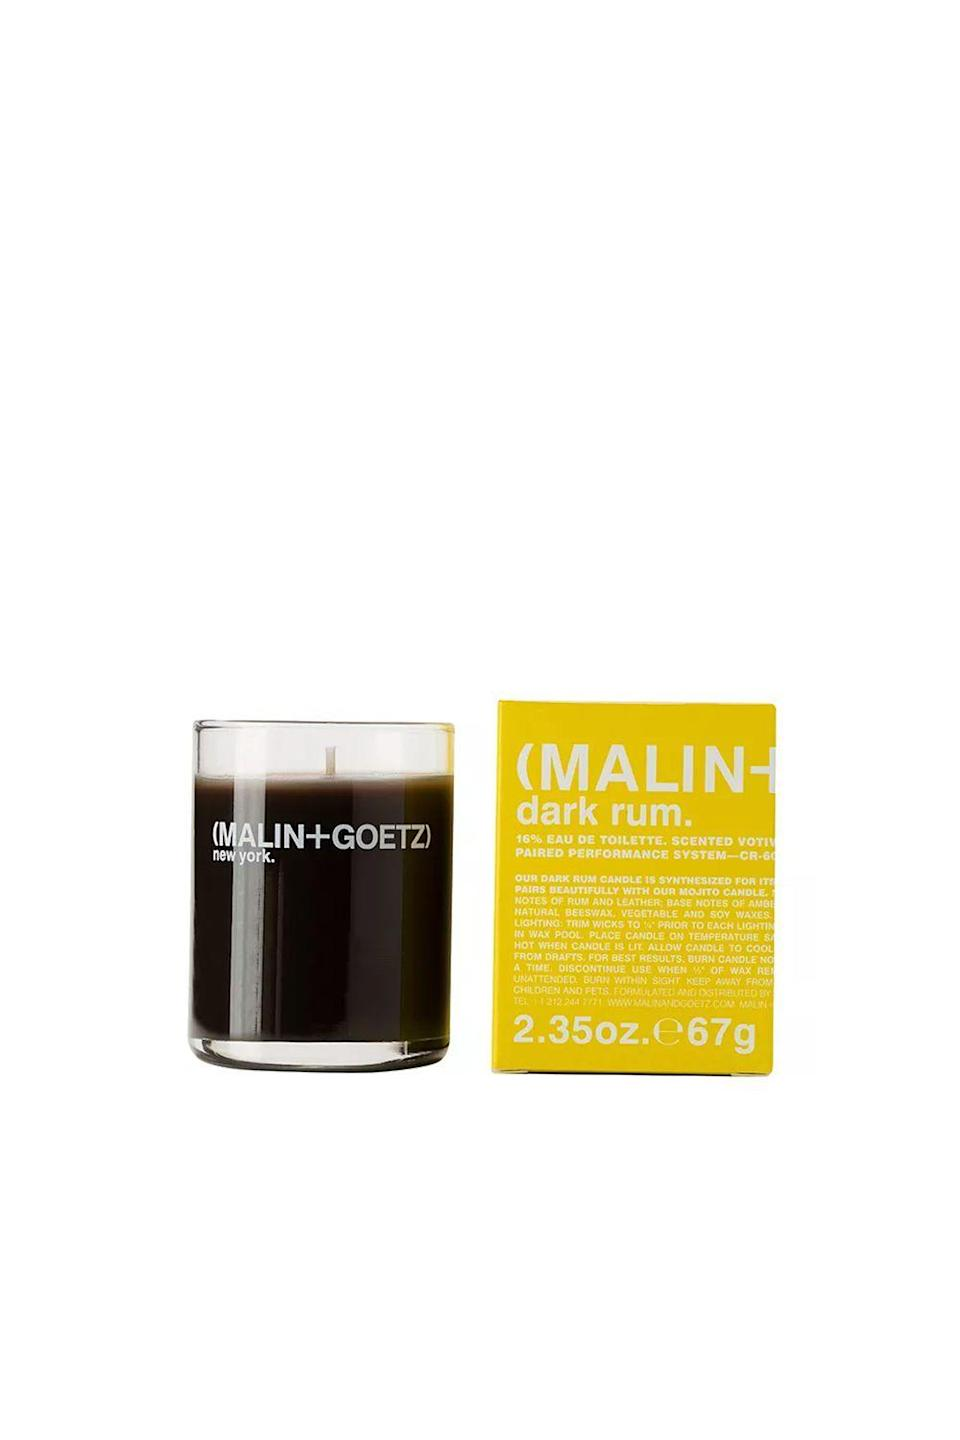 """<p><strong>MALIN+GOETZ</strong></p><p>bloomingdales.com</p><p><strong>$20.00</strong></p><p><a href=""""https://go.redirectingat.com?id=74968X1596630&url=https%3A%2F%2Fwww.bloomingdales.com%2Fshop%2Fproduct%2Fmalingoetz-dark-rum-votive-candle%3FID%3D948955&sref=https%3A%2F%2Fwww.oprahmag.com%2Flife%2Fg27562264%2Fbest-fall-scented-candles%2F"""" rel=""""nofollow noopener"""" target=""""_blank"""" data-ylk=""""slk:SHOP NOW"""" class=""""link rapid-noclick-resp"""">SHOP NOW</a></p><p>This exotic aroma combines bergamot and plum, rum and leather, and amber-patchouli and vanilla.</p>"""